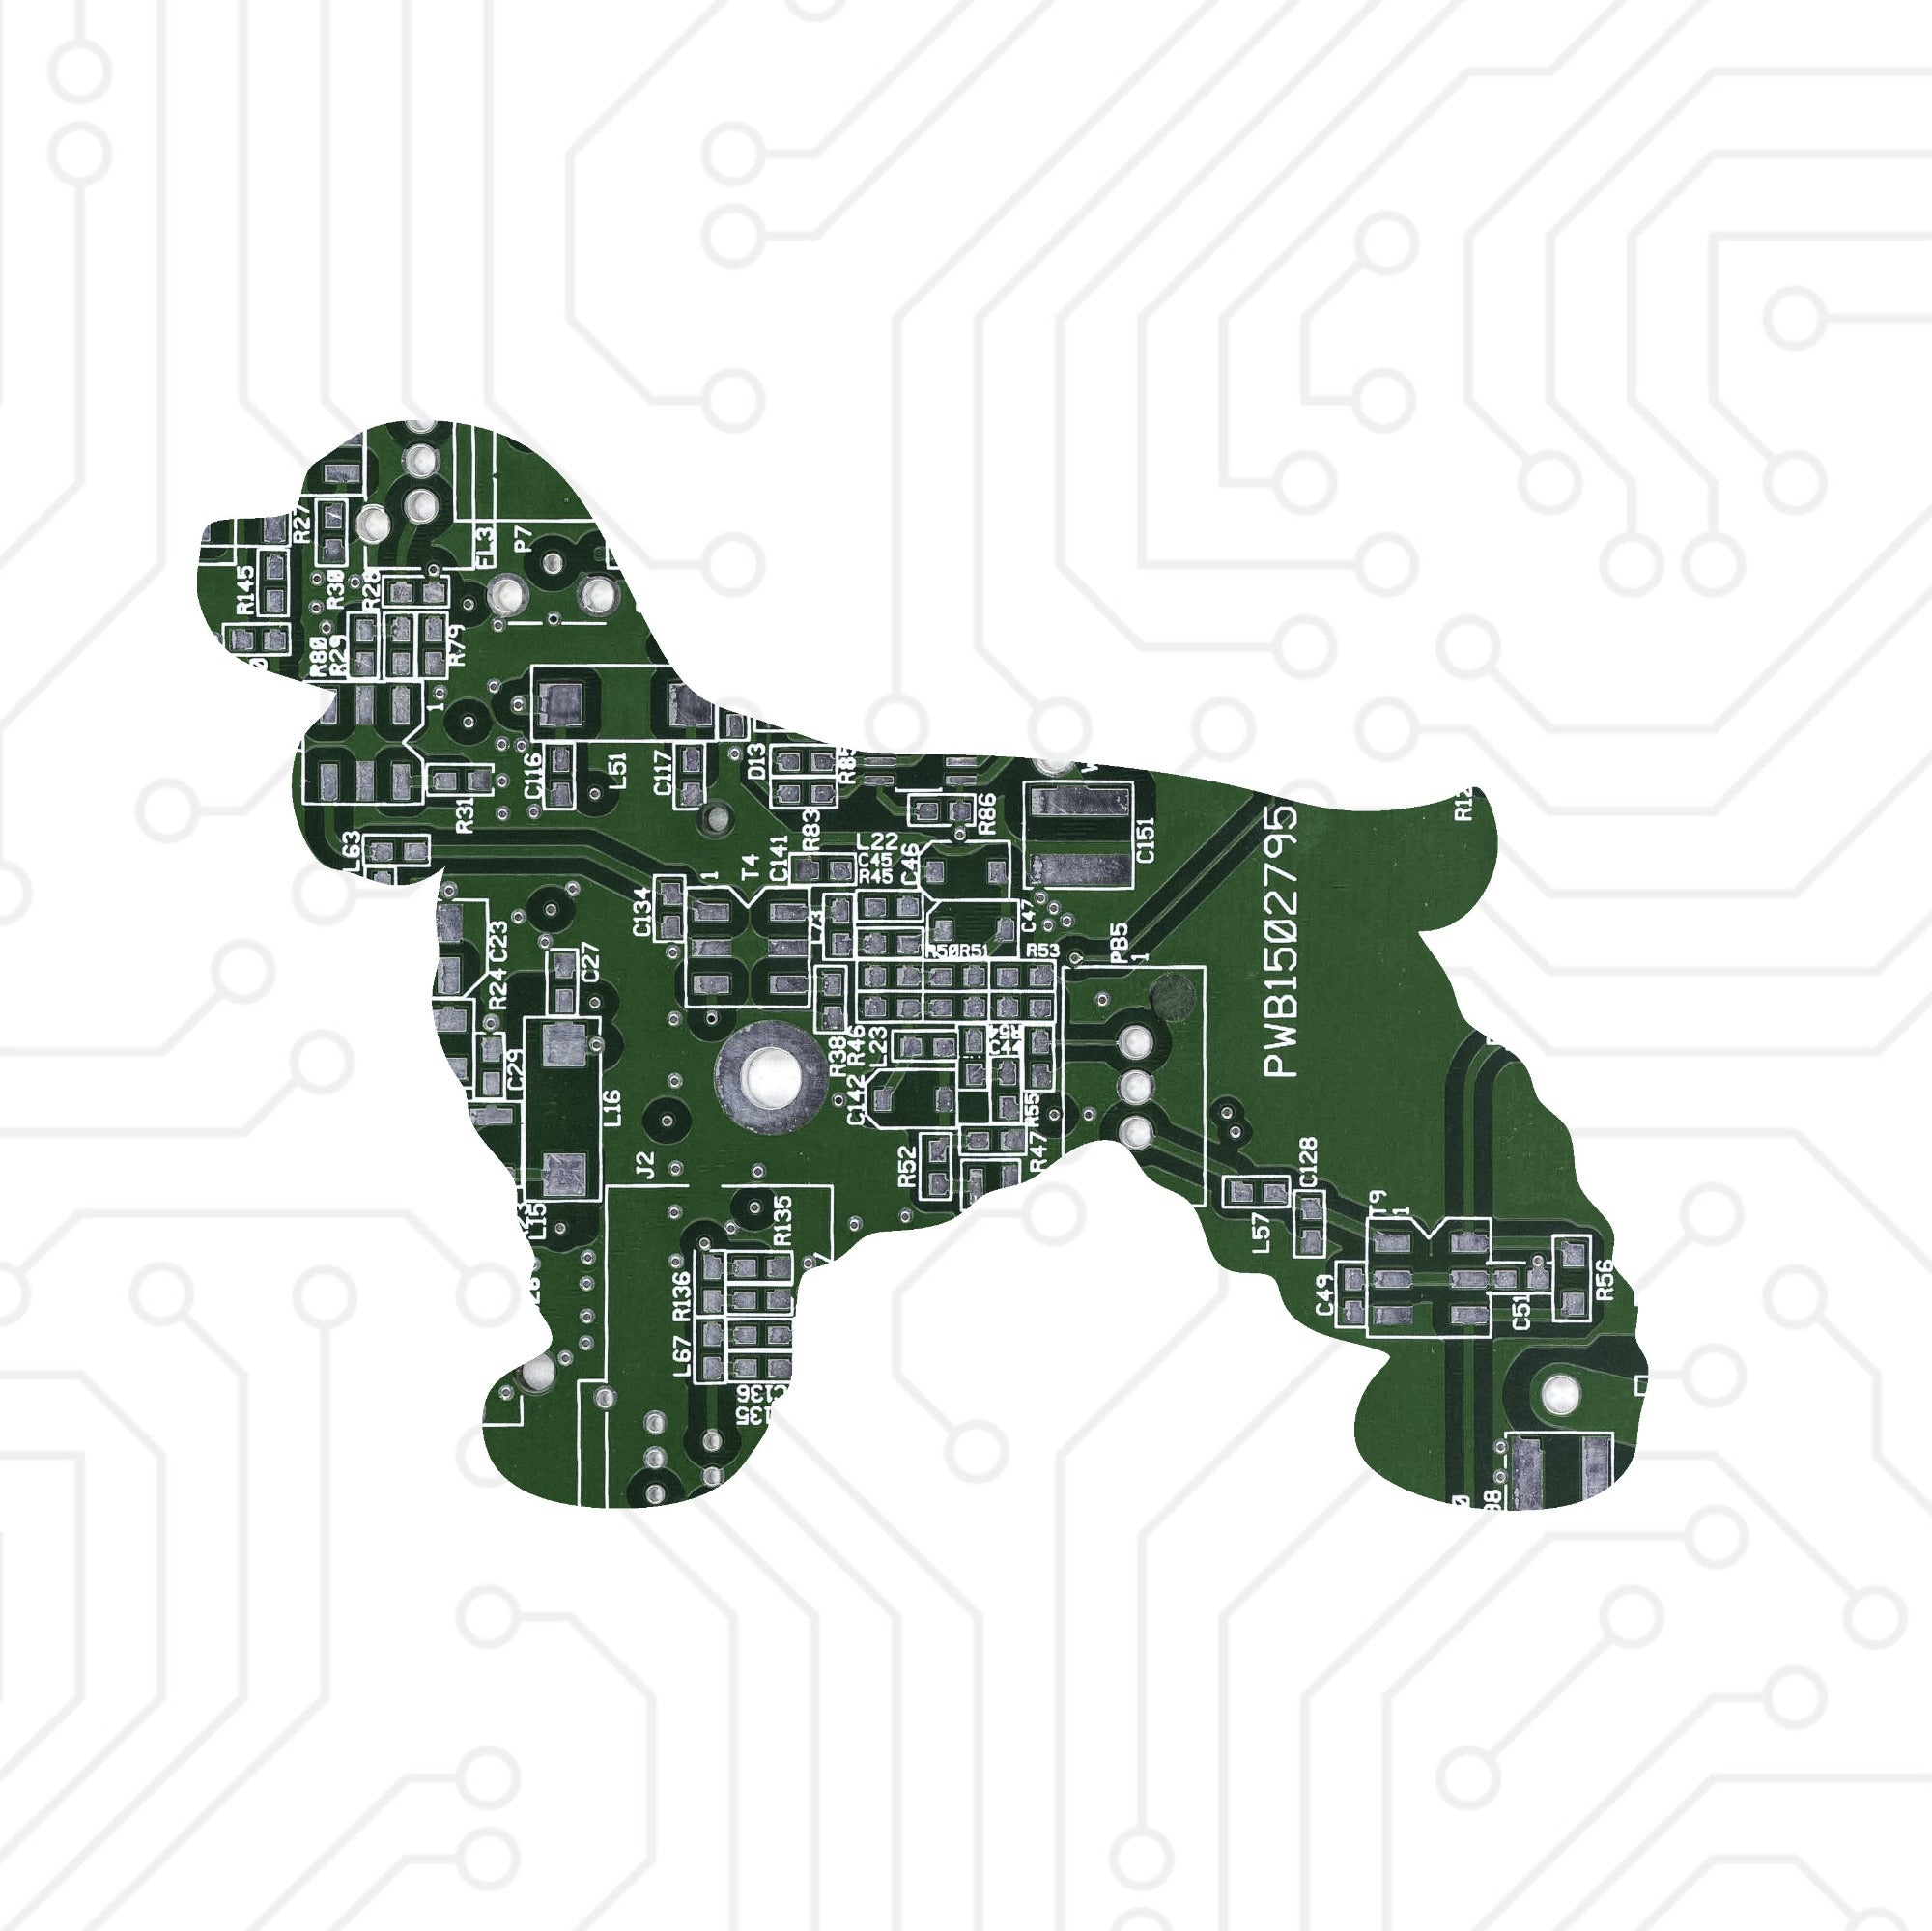 Circuit Board Spaniel - TechWears Ltd